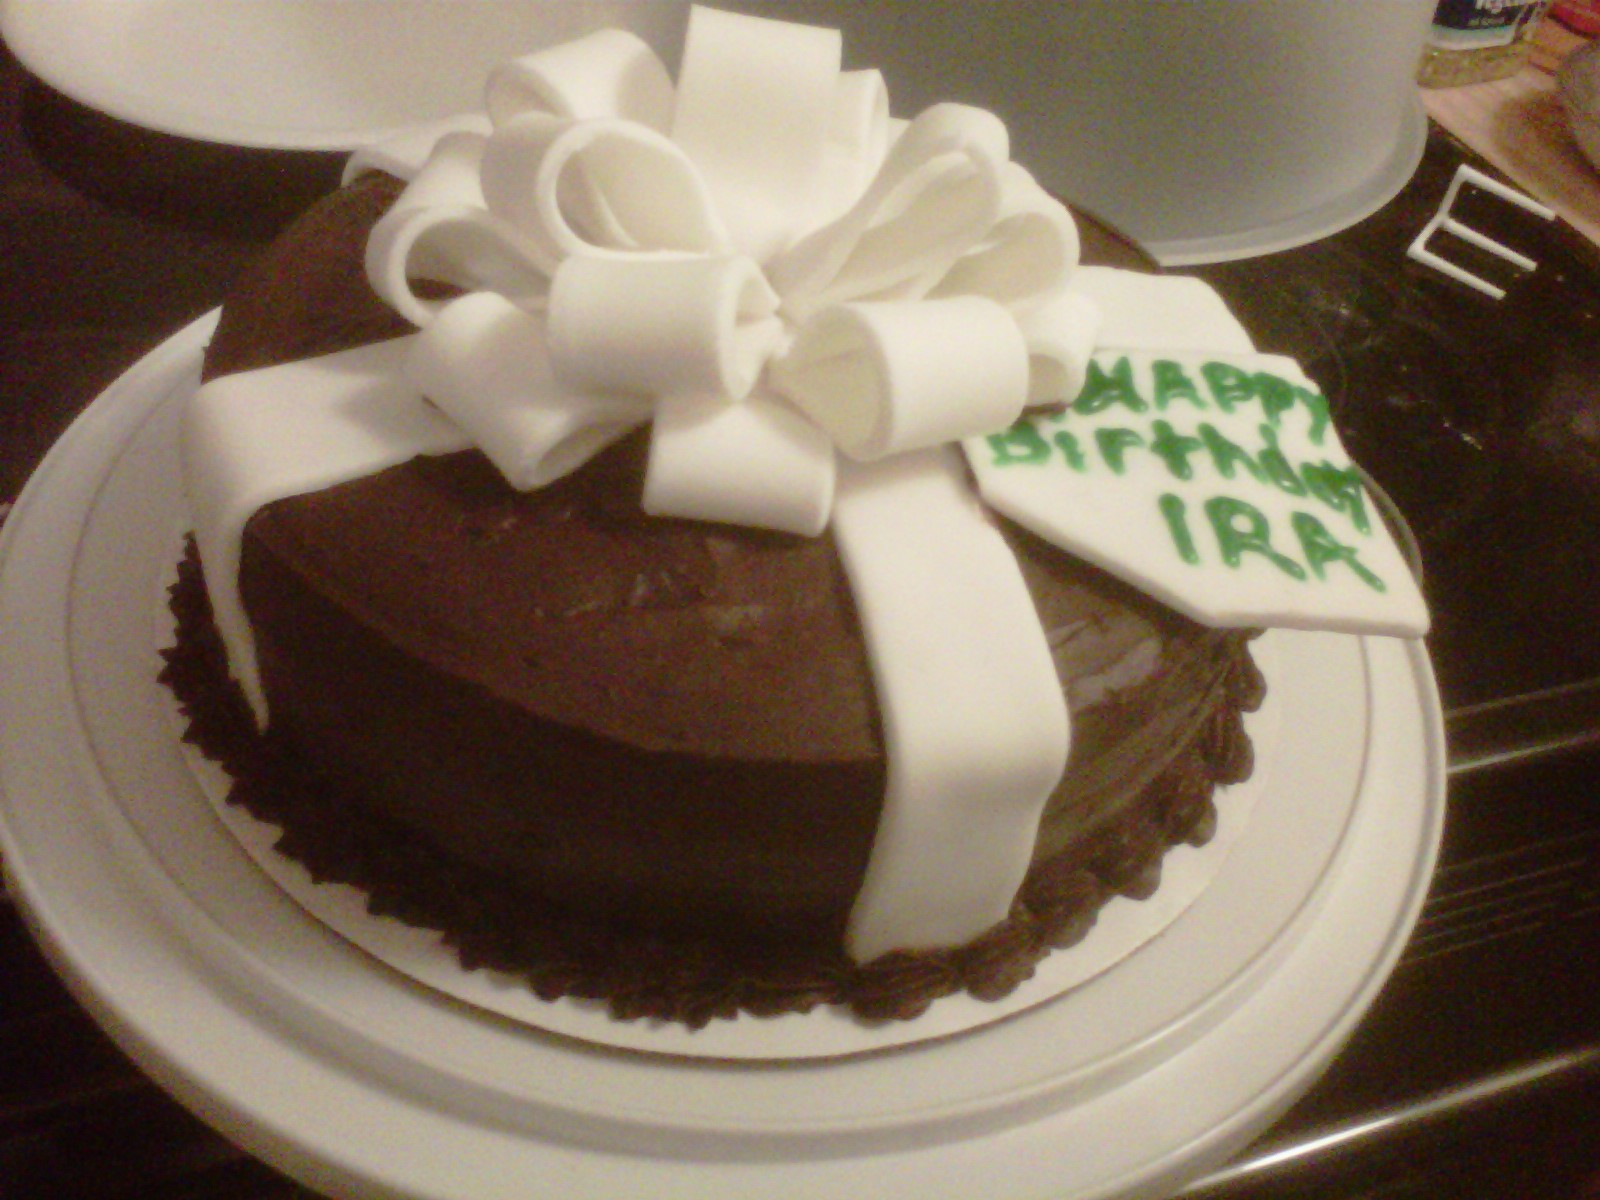 Cake Decorating by Sonia: Cake Projects